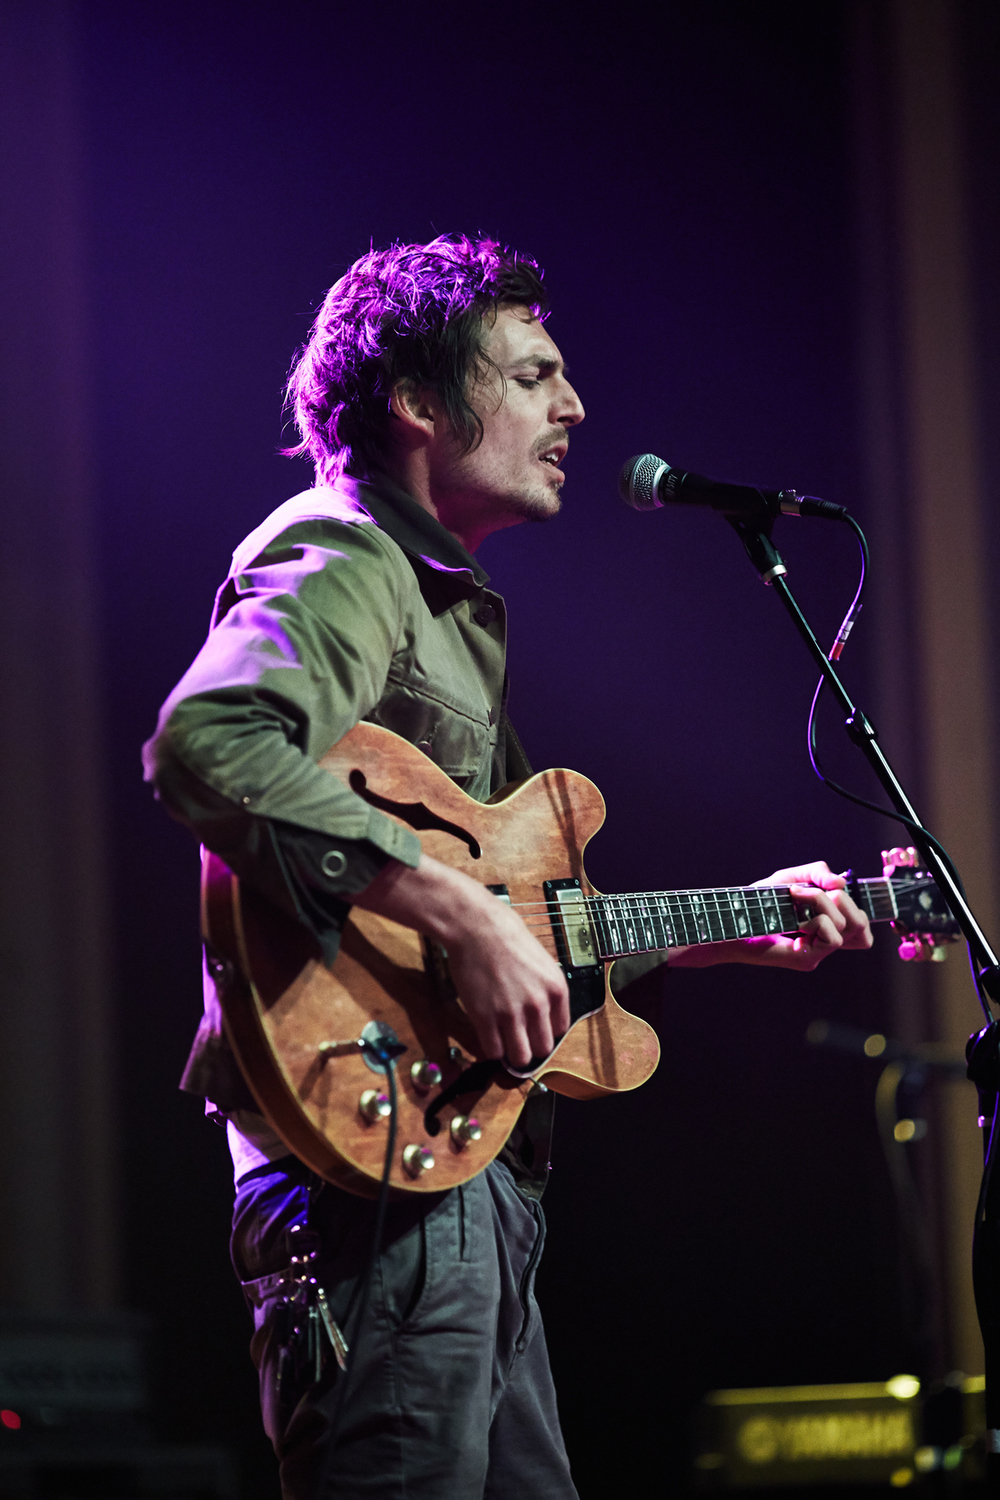 Augustana_At_The_Varsity_Theater_Minneapolis_2014_Photo_By_Joe_Lemke_12.JPG